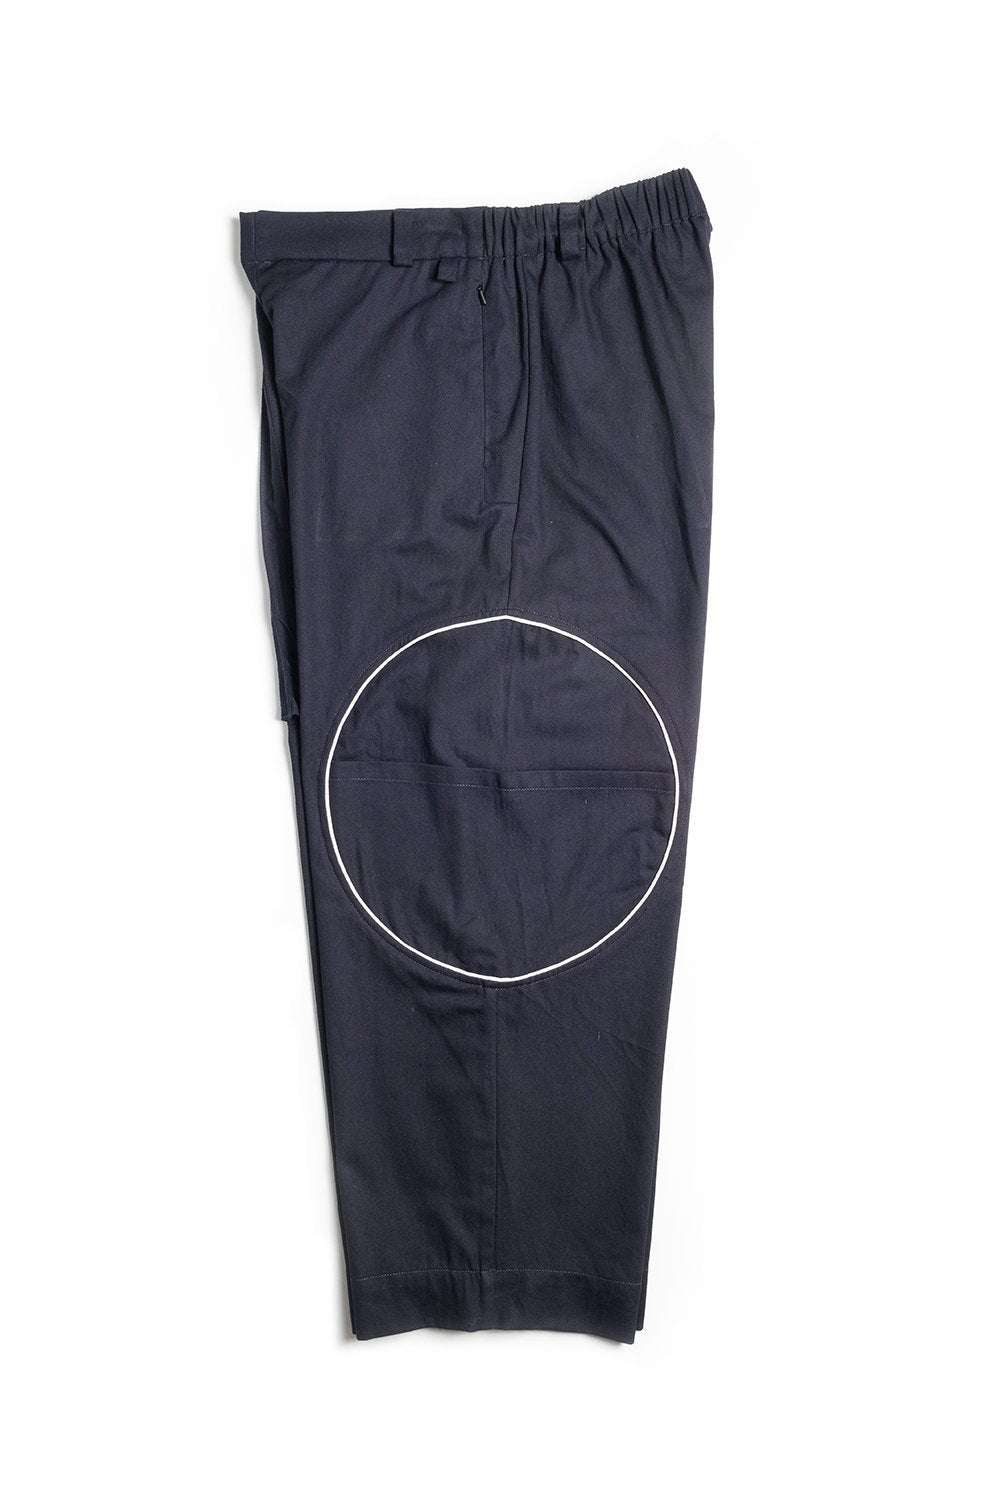 Orbit Blue Eclipse Pants